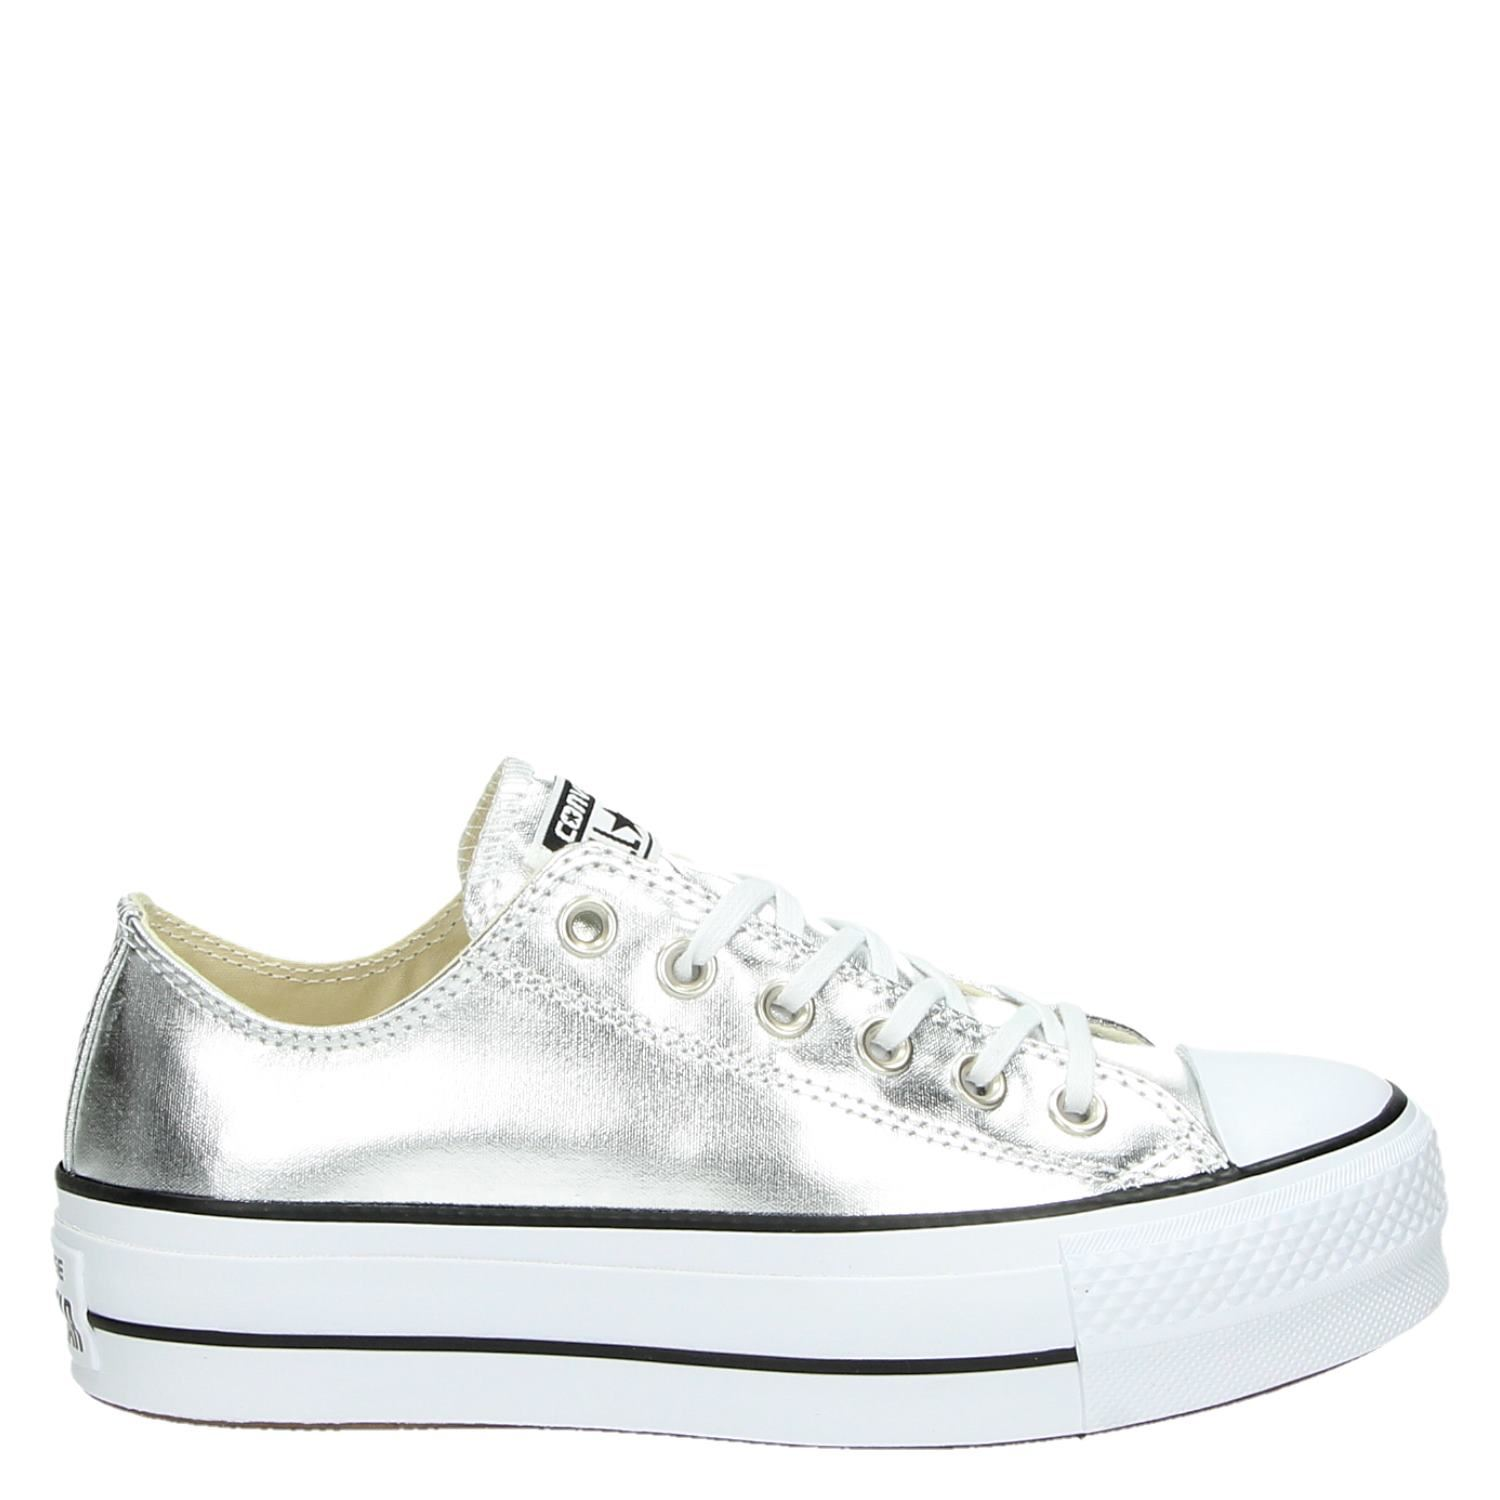 6dfcbbe0a285 Converse Chuck Taylor All Star Lift dames platform sneakers zilver